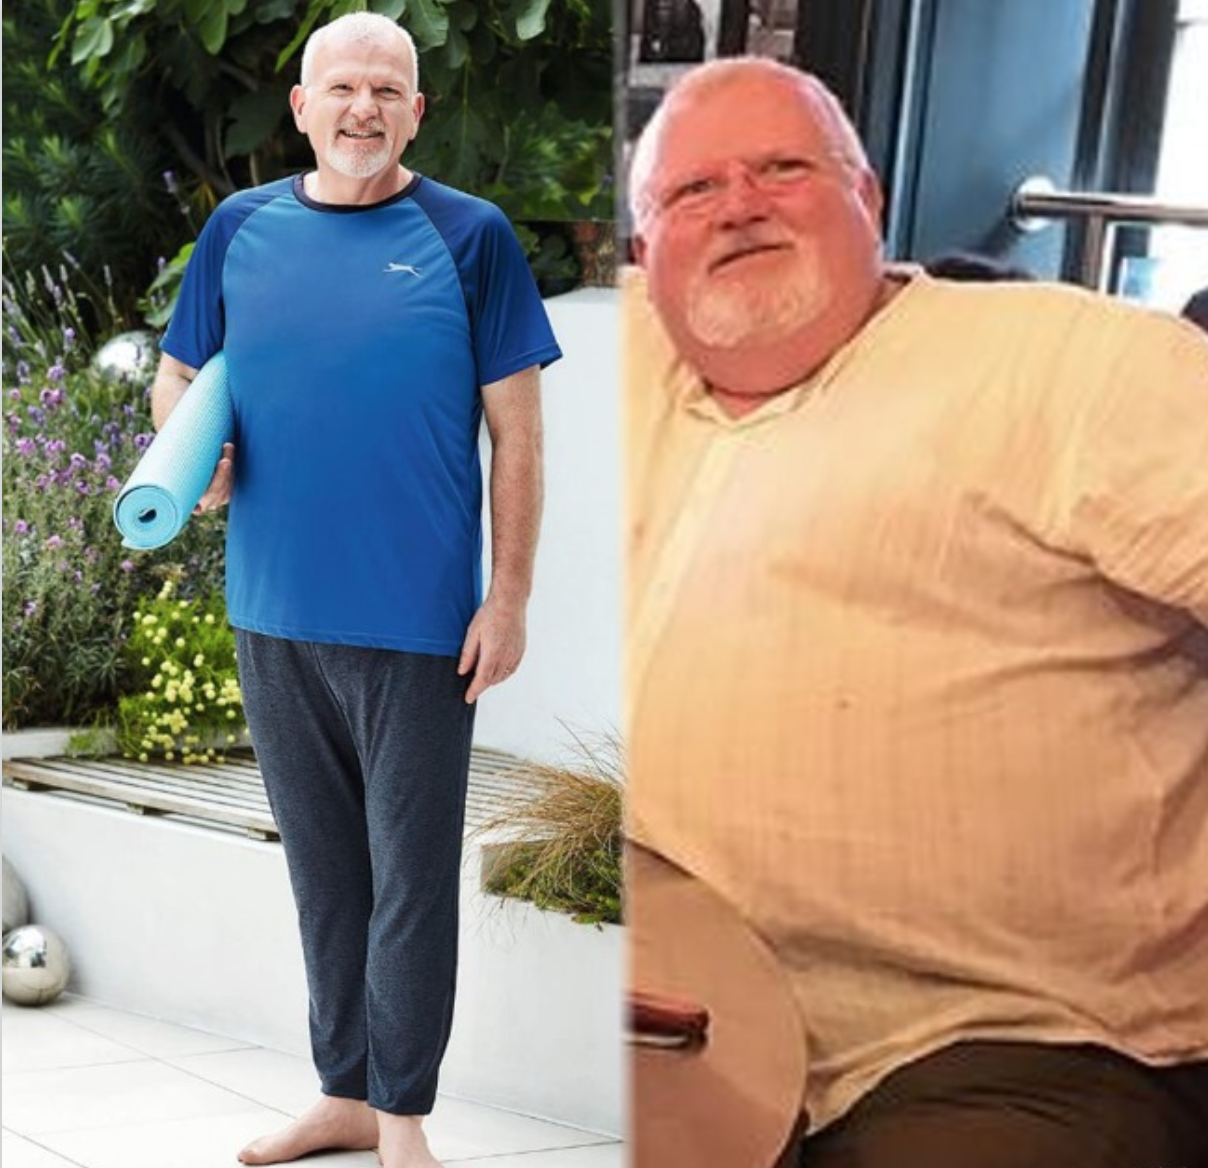 SW transformation story: 'I feel like a new man', he lost 9st 2lbs, rebuilt his confidence and found his balance